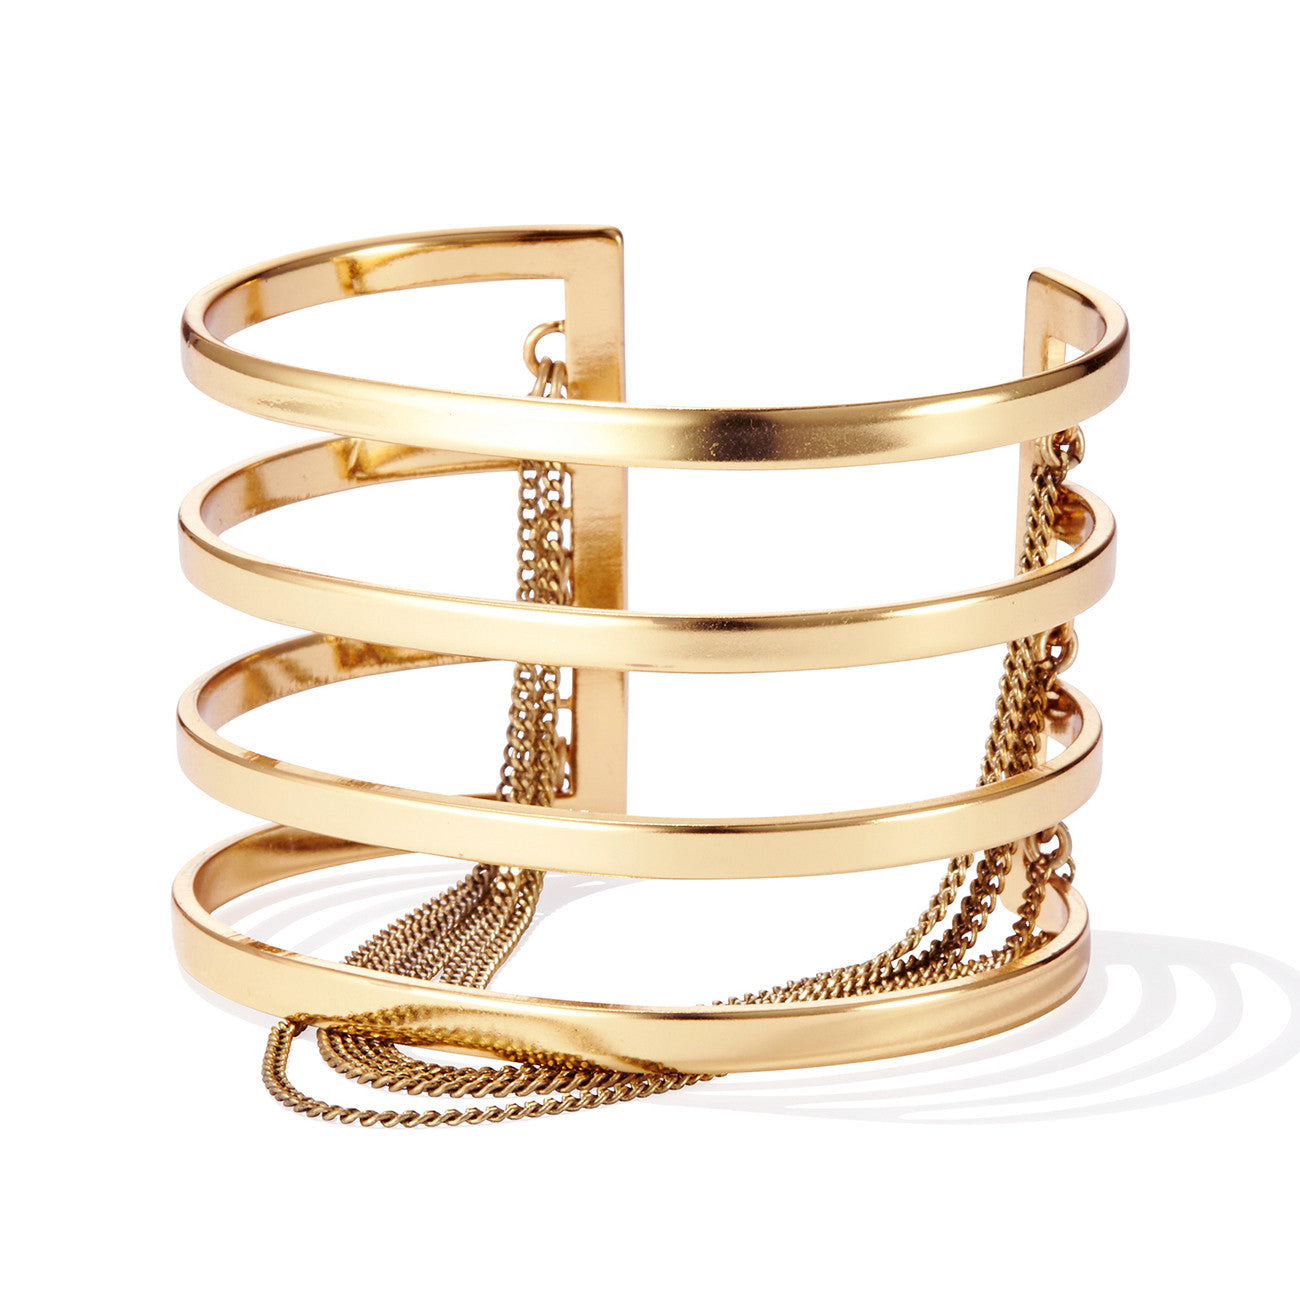 Series Cuff by Jenny Bird in High Polish Gold